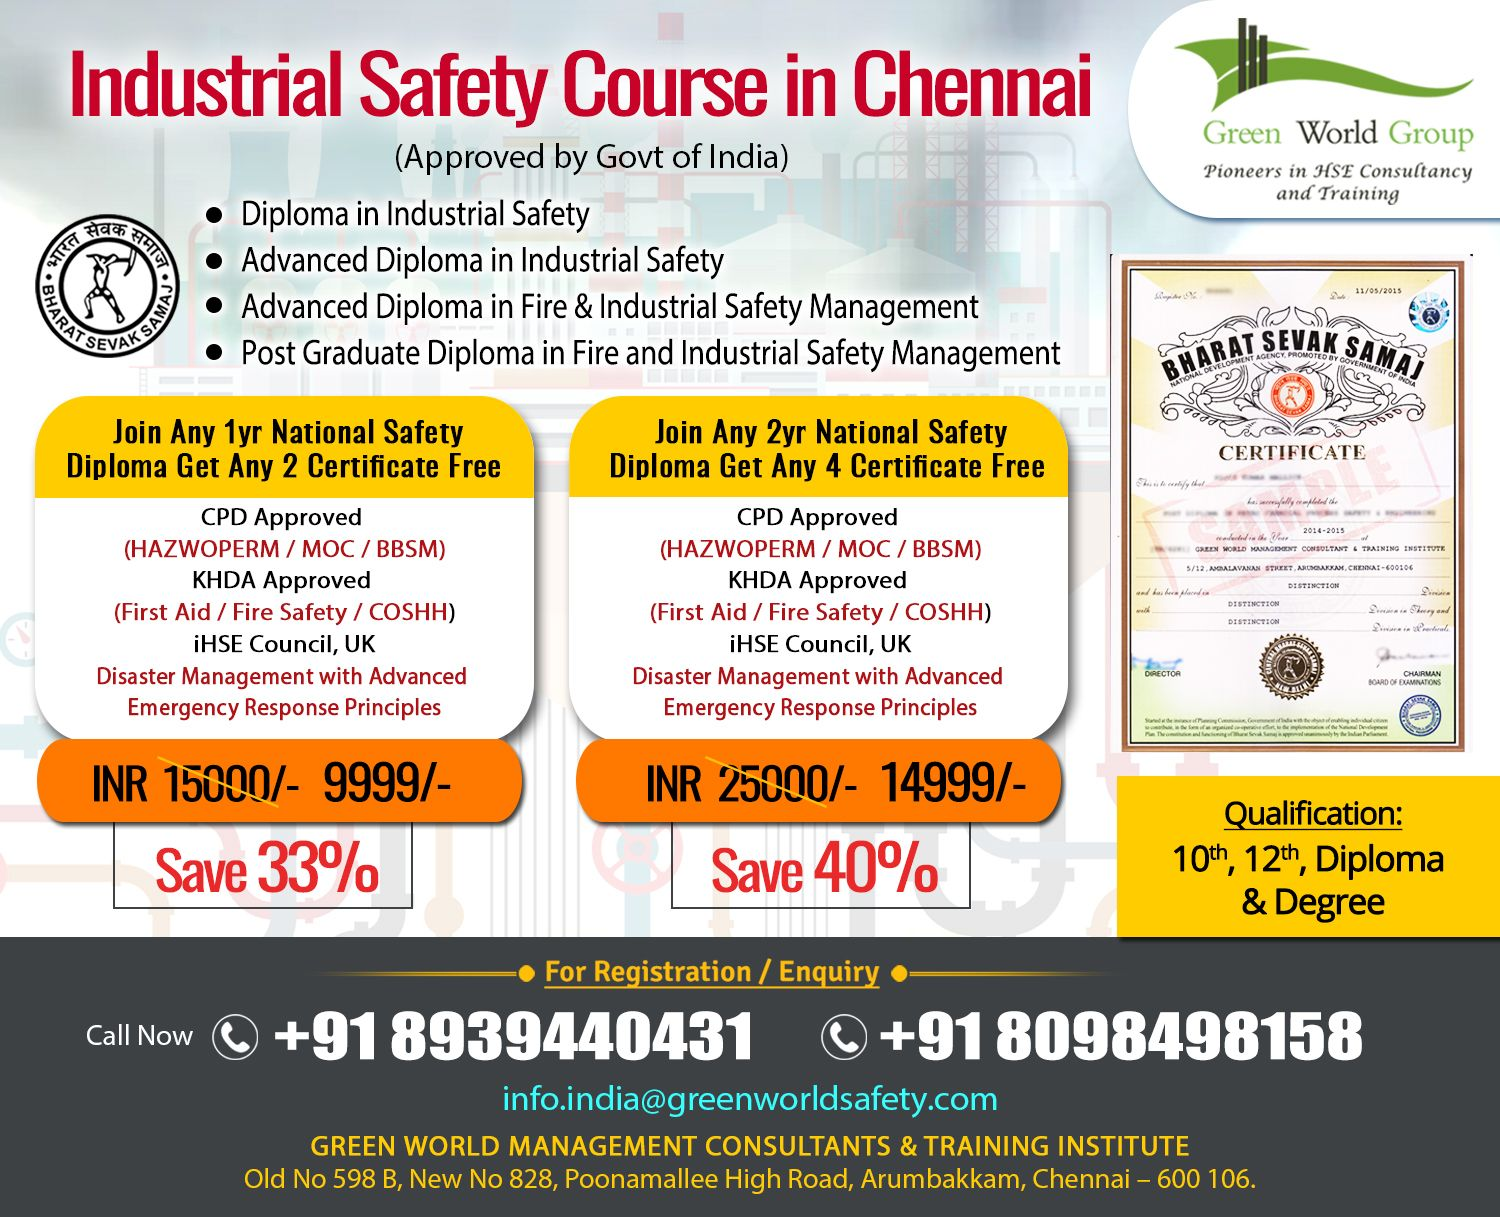 Industrial Safety Course in Chennai Safety courses